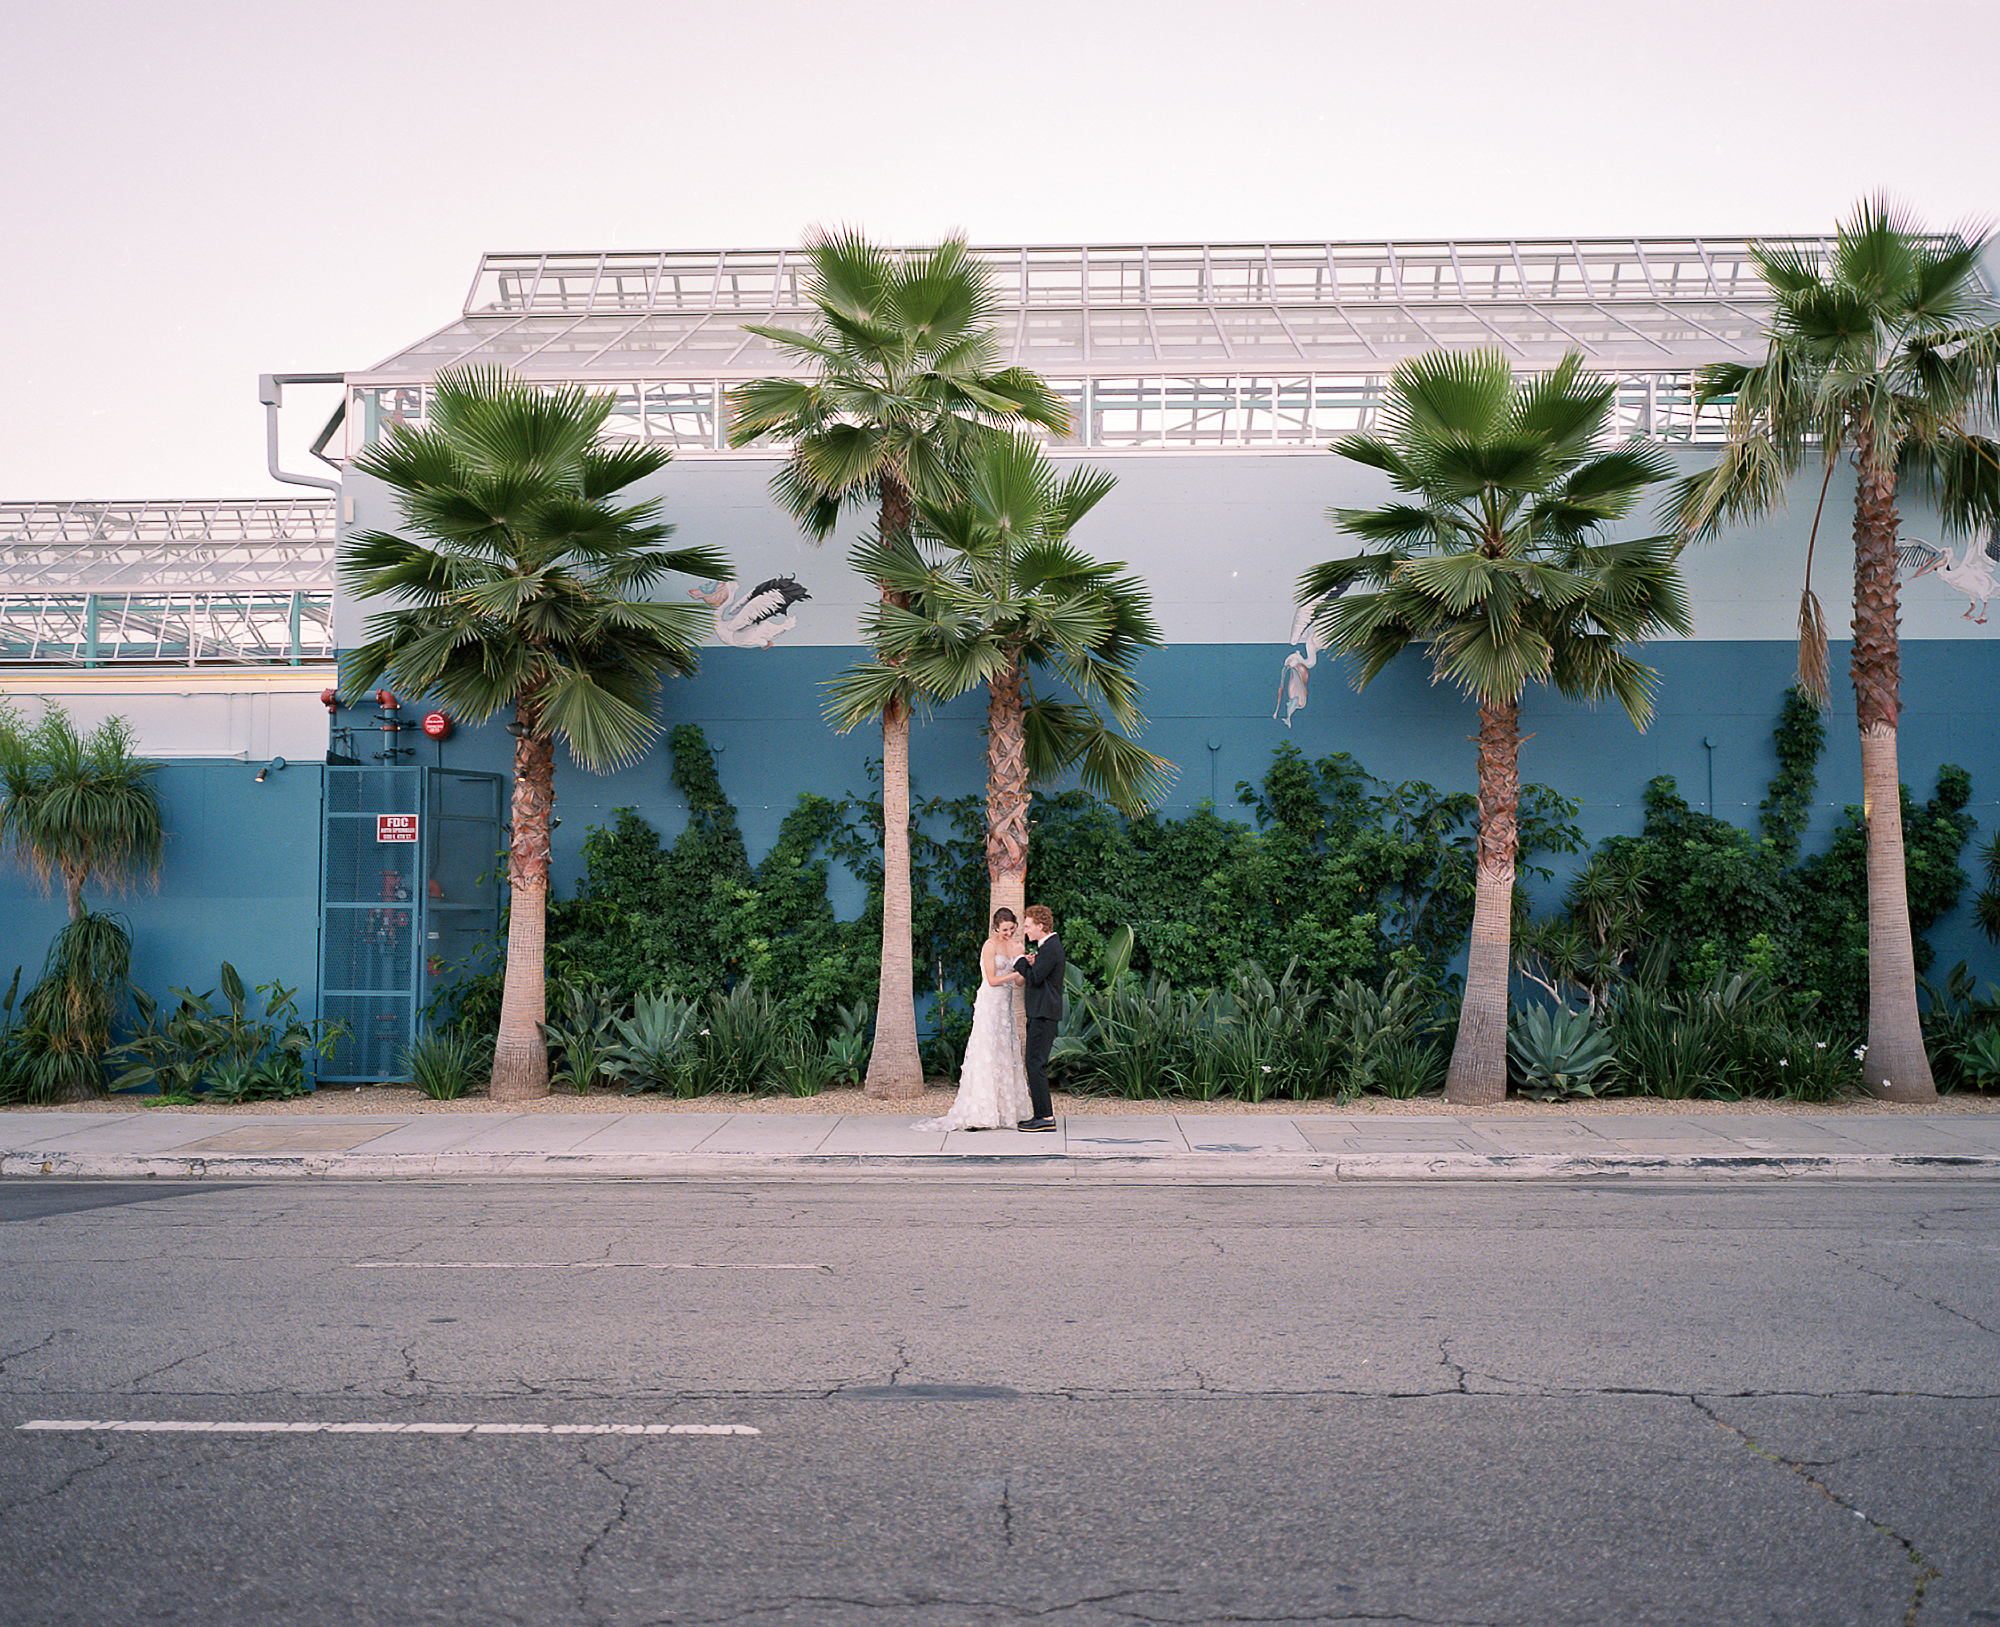 153-Los-Angeles-California-2019-Jackie-Skylar-Wedding-Portra800_1.JPG